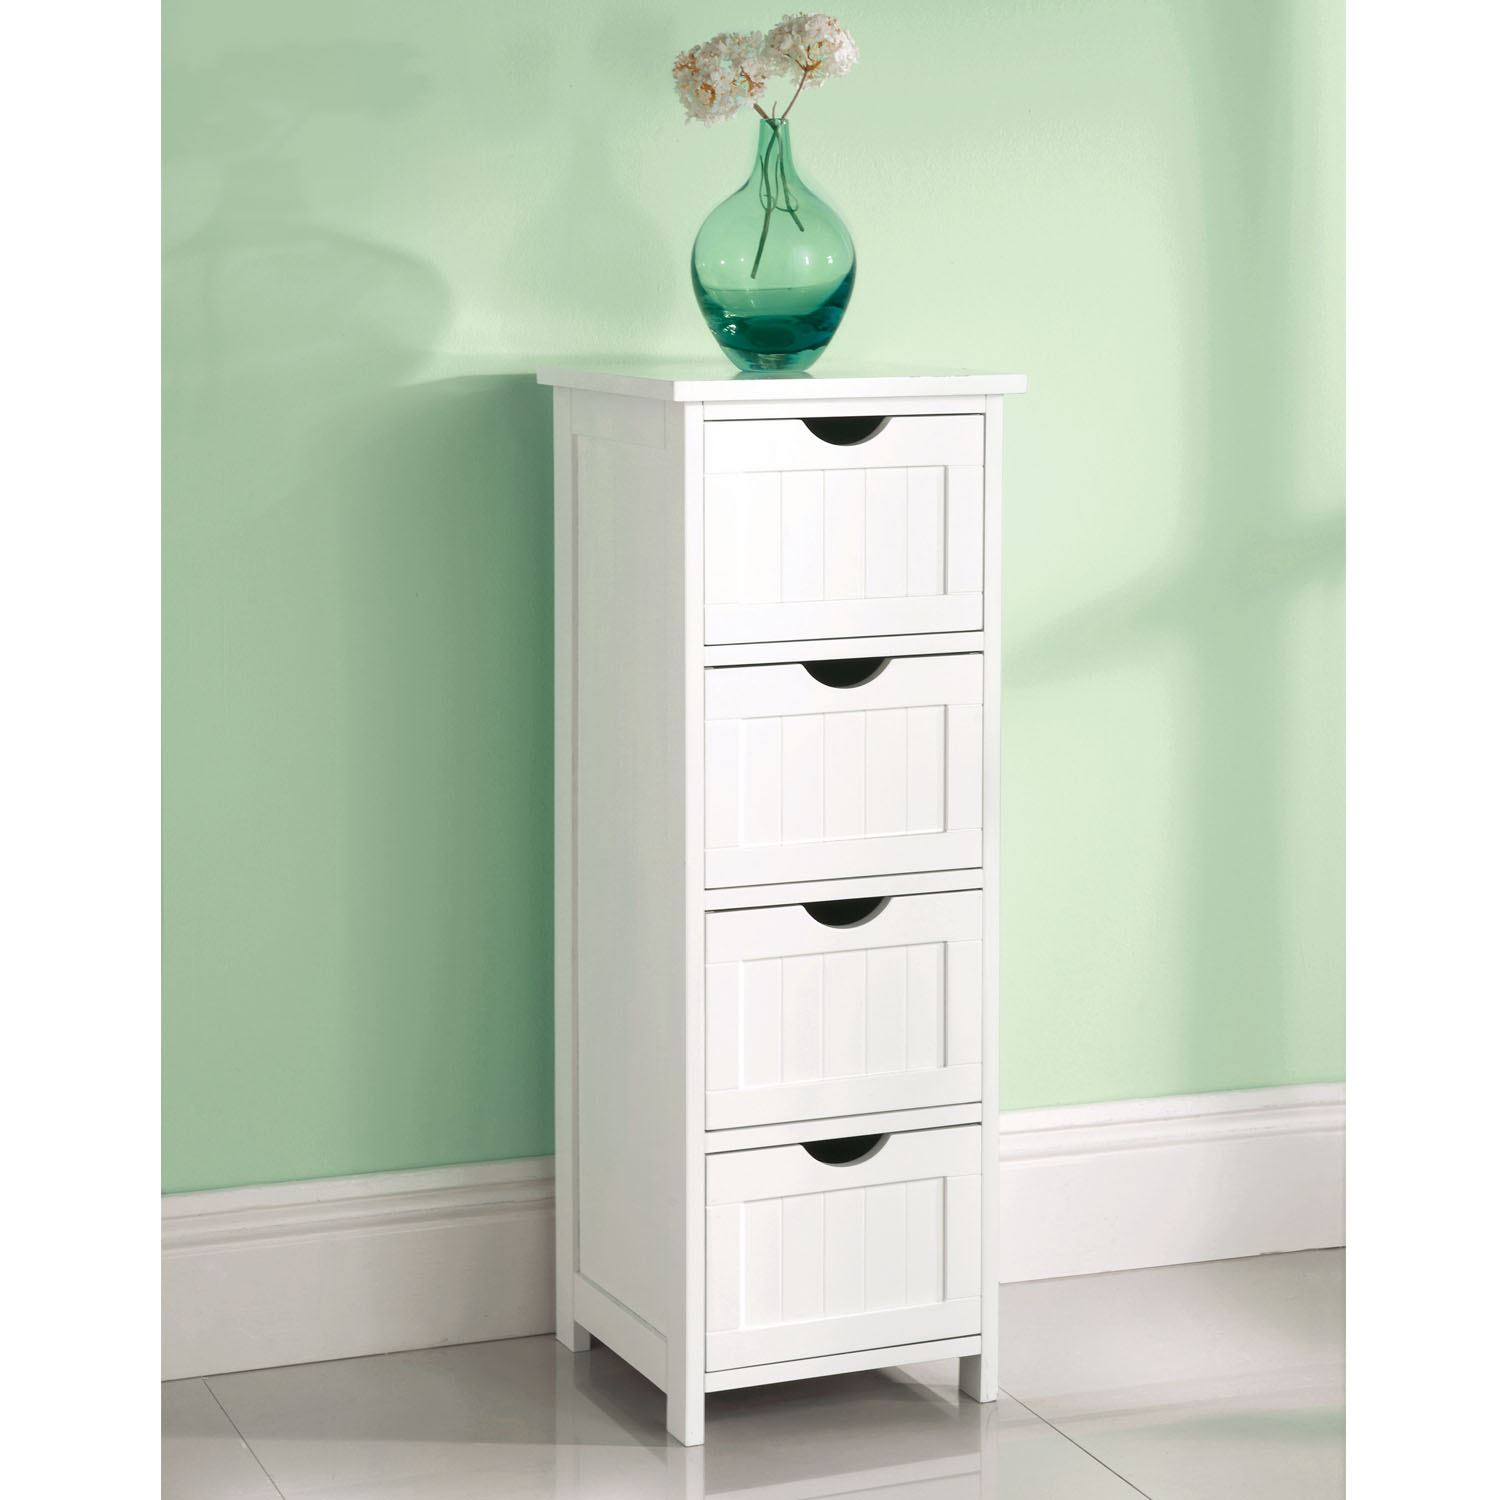 Image of: Cabinet and Drawers